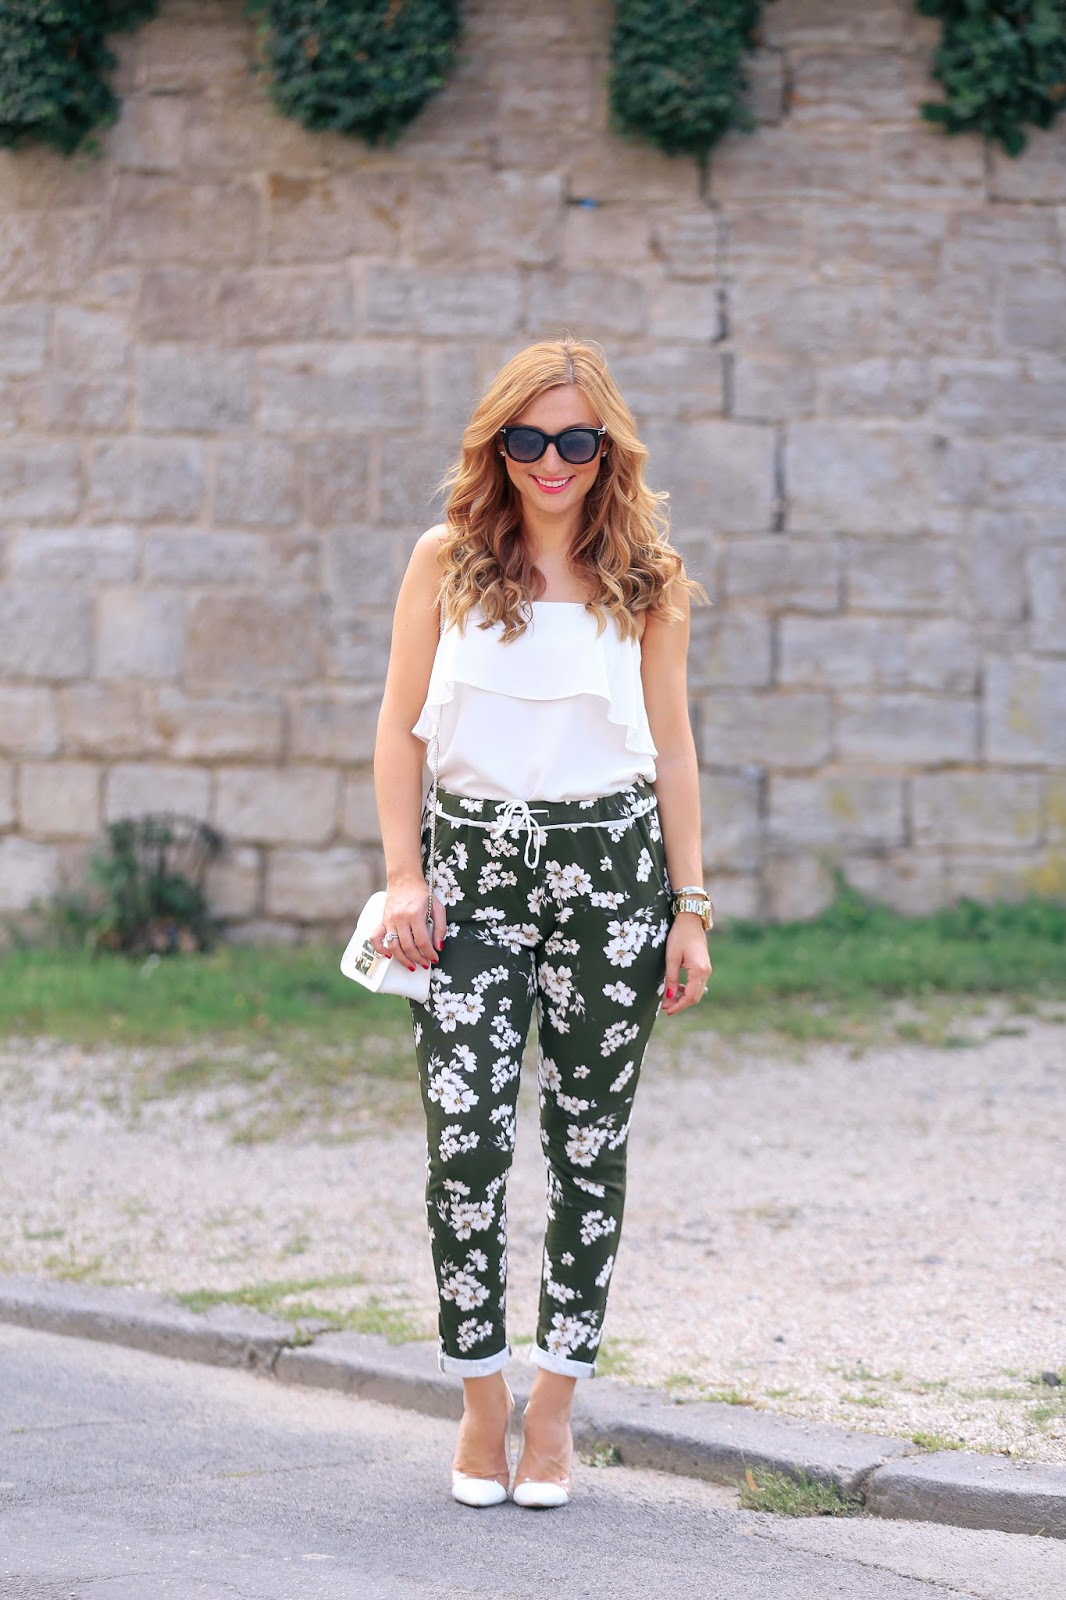 Blogger-outfit-was-ziehen-blogger-an-fashionstylebyjohanna-deutsche-fashionblogger-Jogger-pant